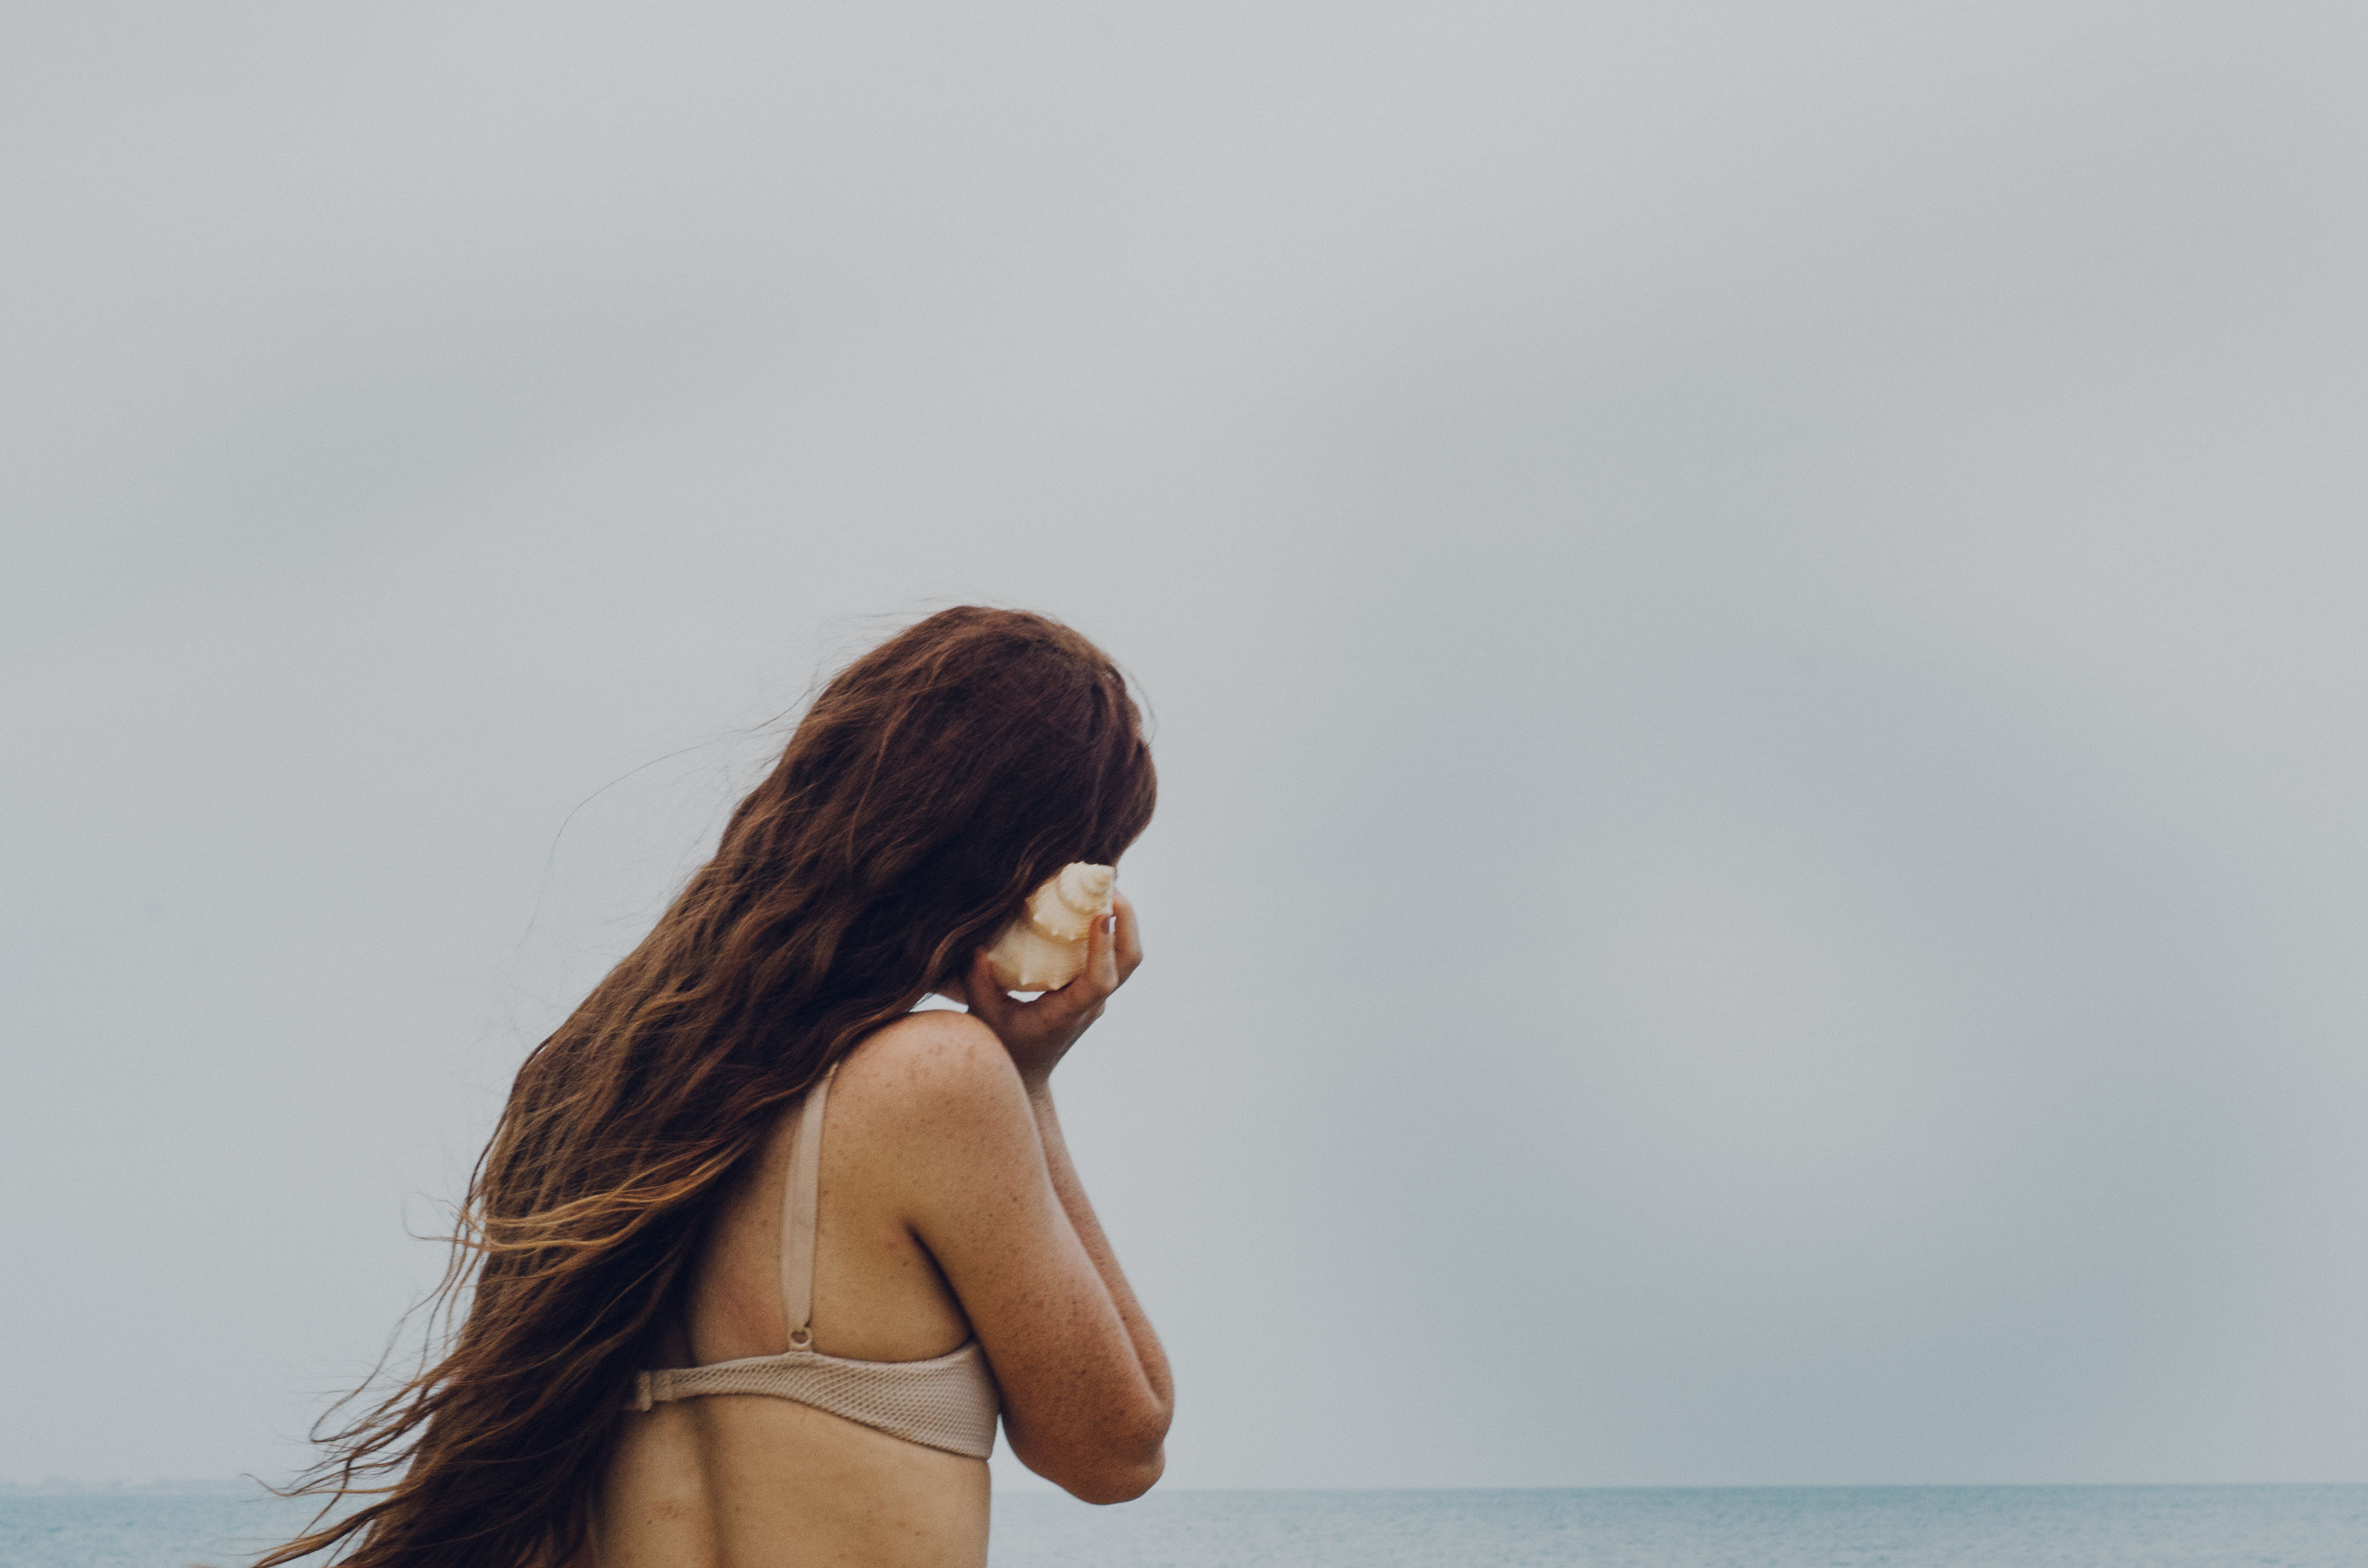 Calling Home Young AdultLeisure Activity Tranquility Horizon Over Water Nature Women Sea Long Hair Outdoors Live For The Story